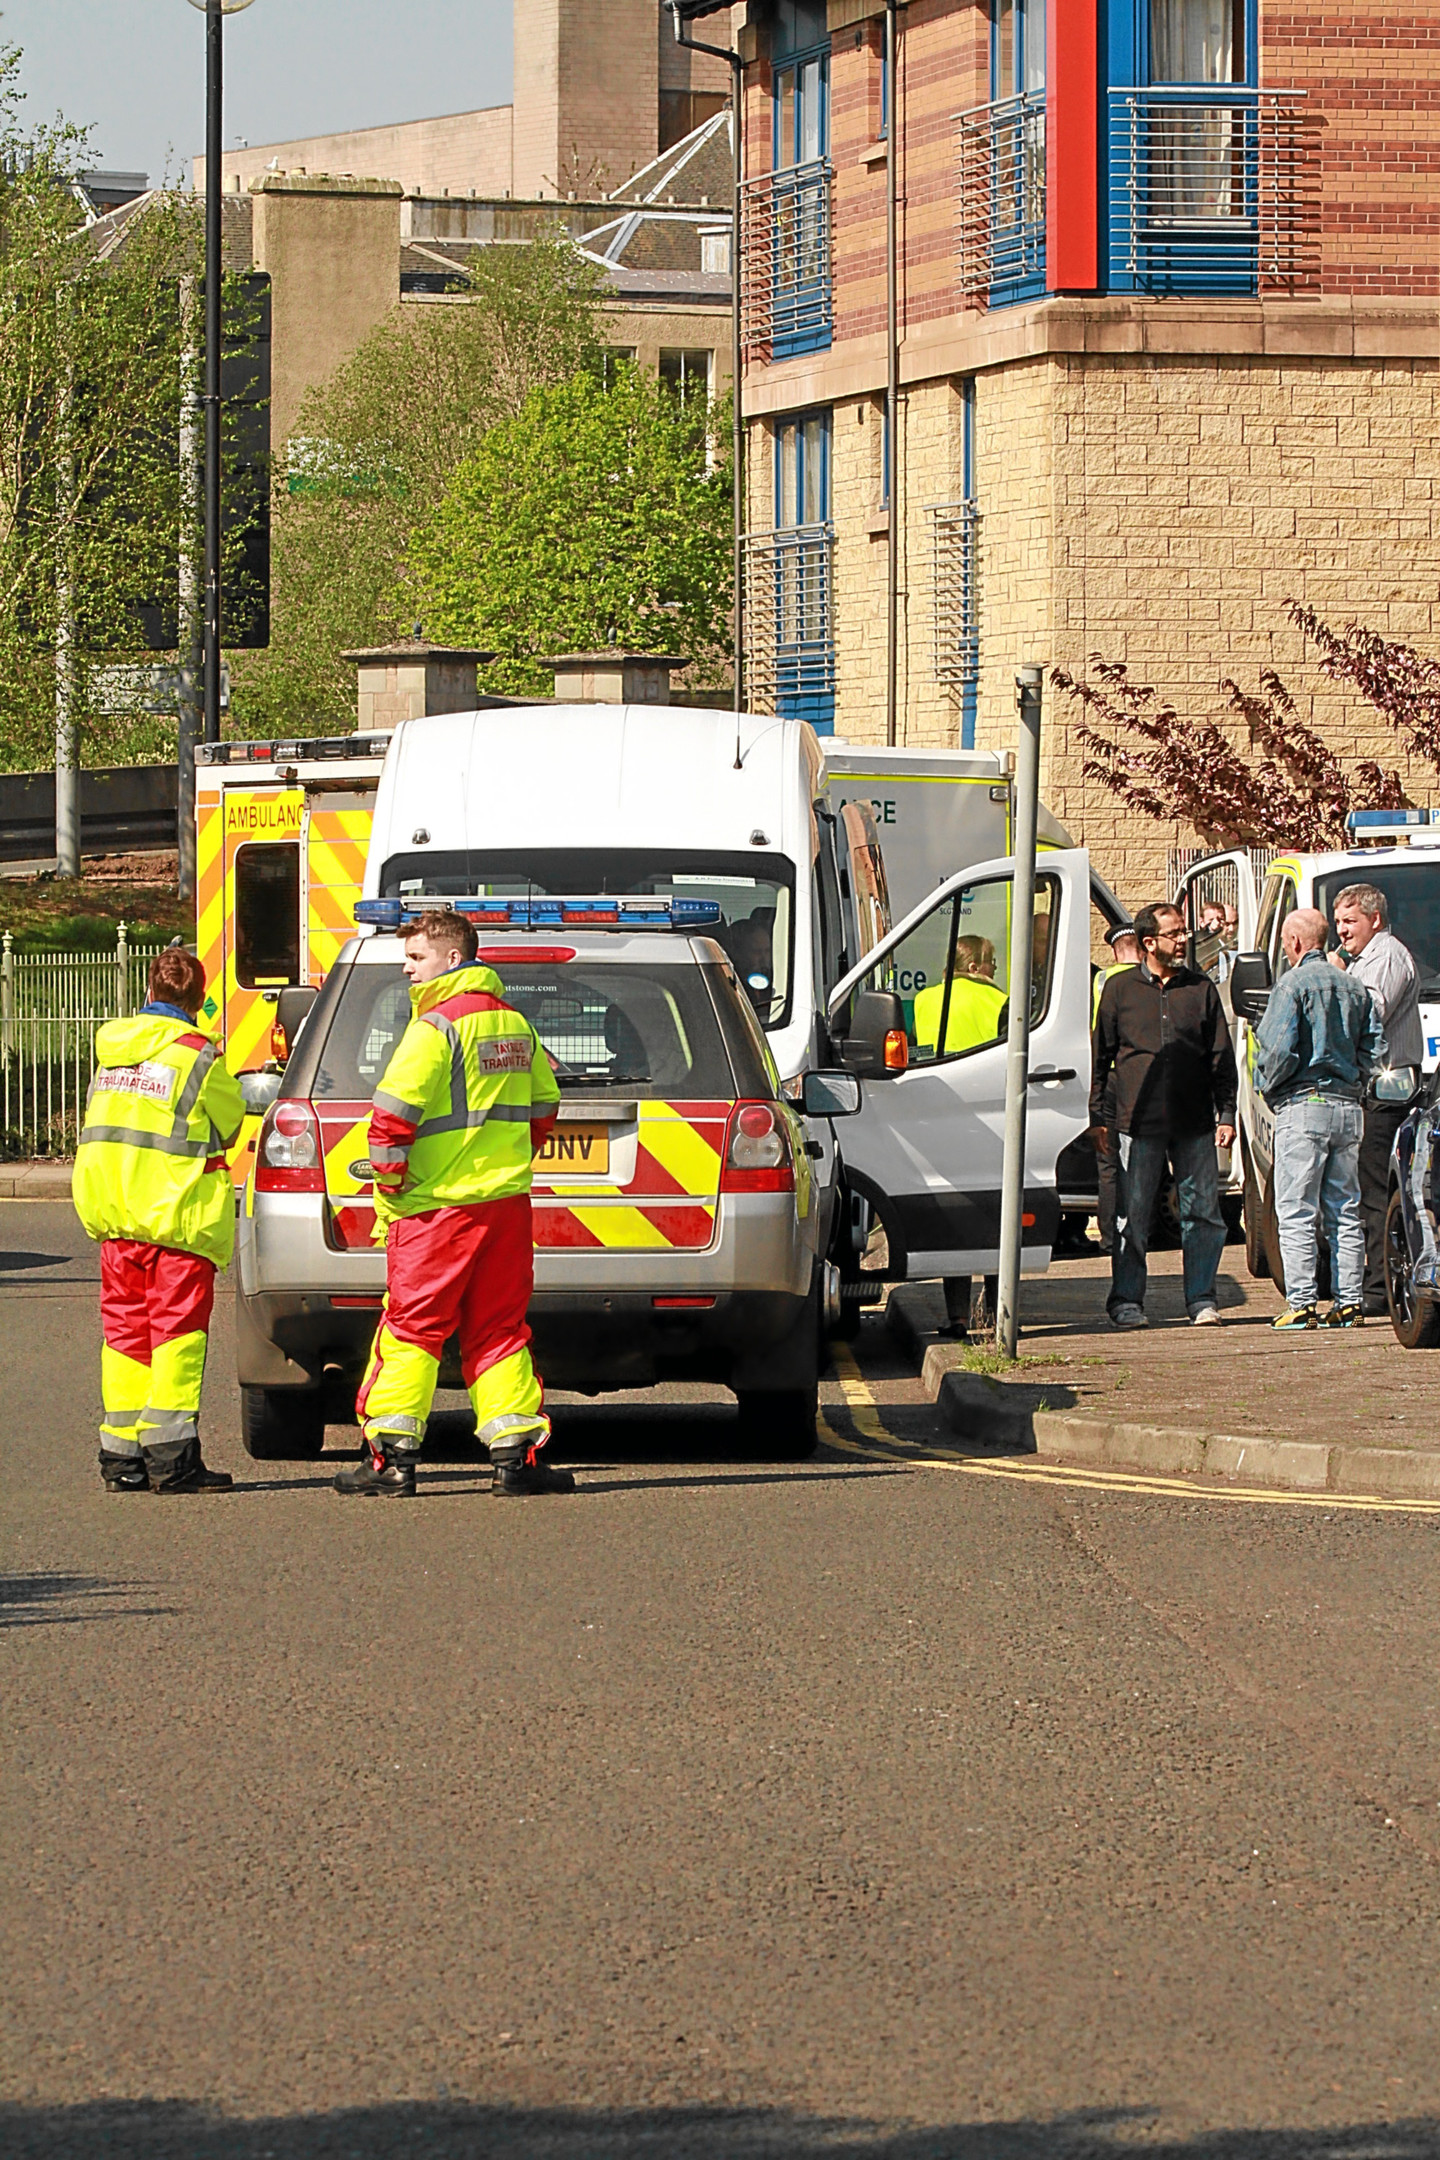 Police and ambulance services attended the incident